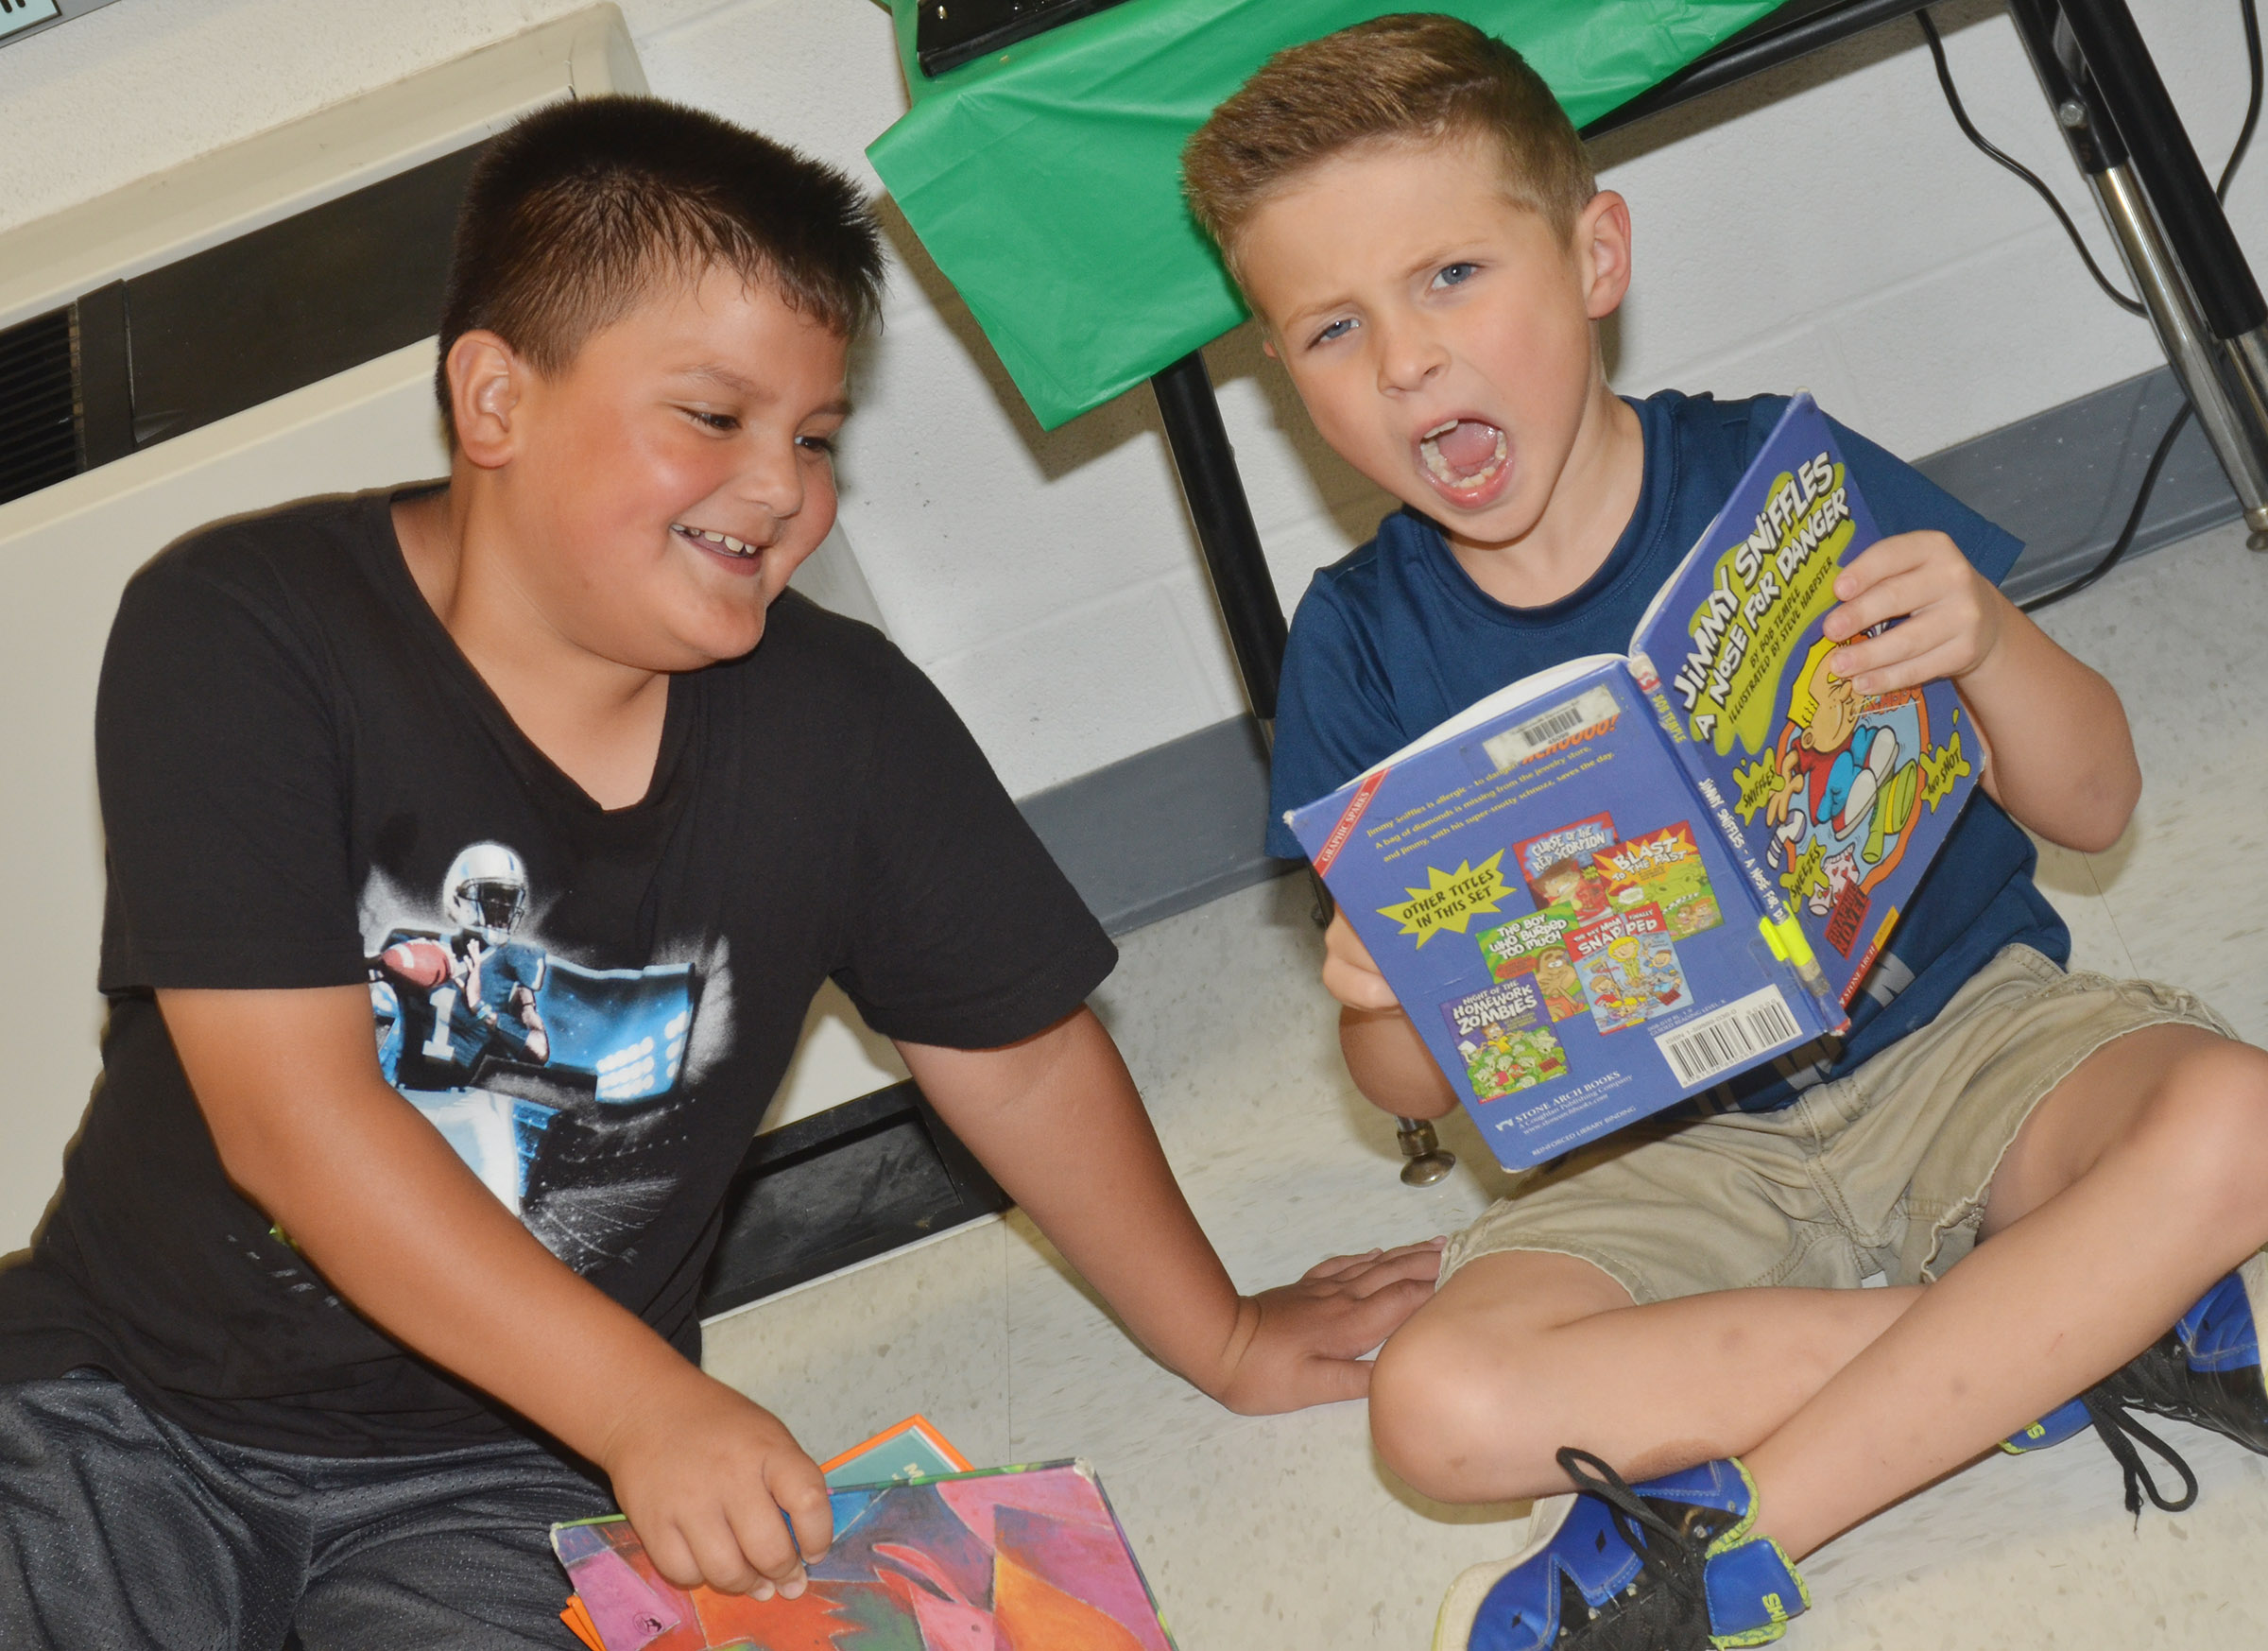 CES second-graders Eric Mixtega, at left, and Bryson Gabehart have fun reading a book together.